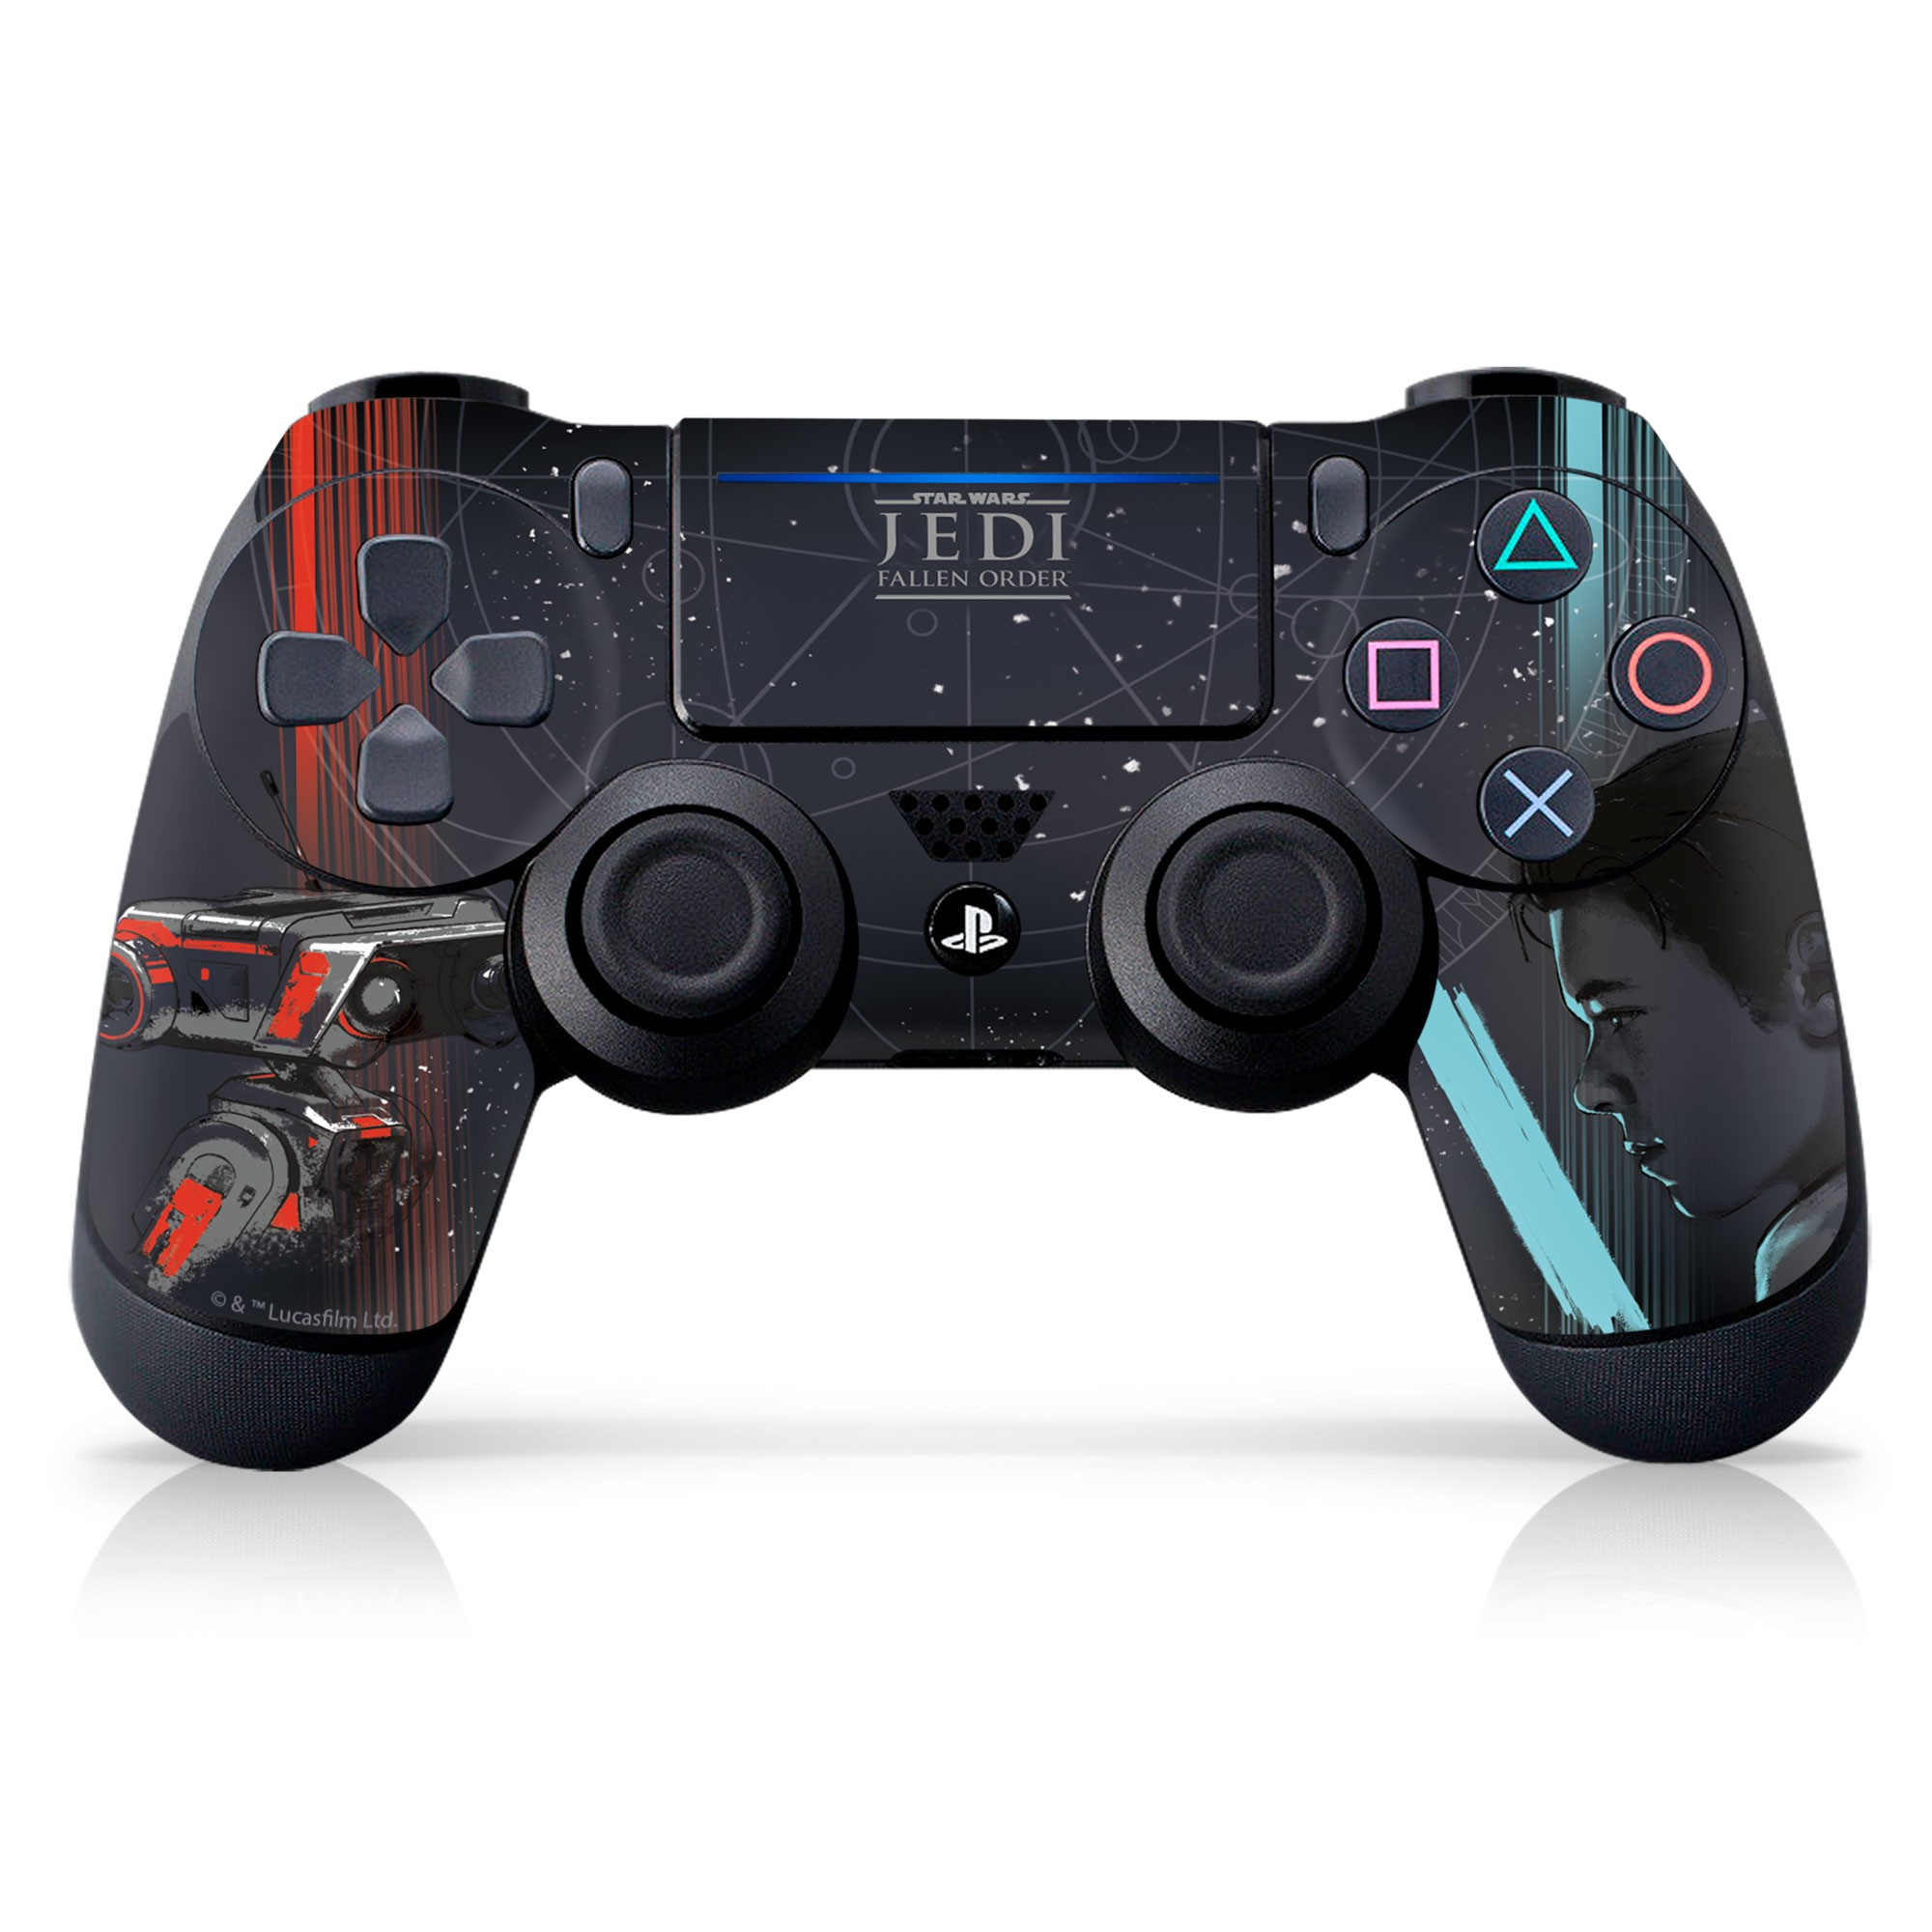 PS4 Controller Skin with a Star Wars Jedi Fallen Order Cal Kestis/BD-1 Design, Image 1